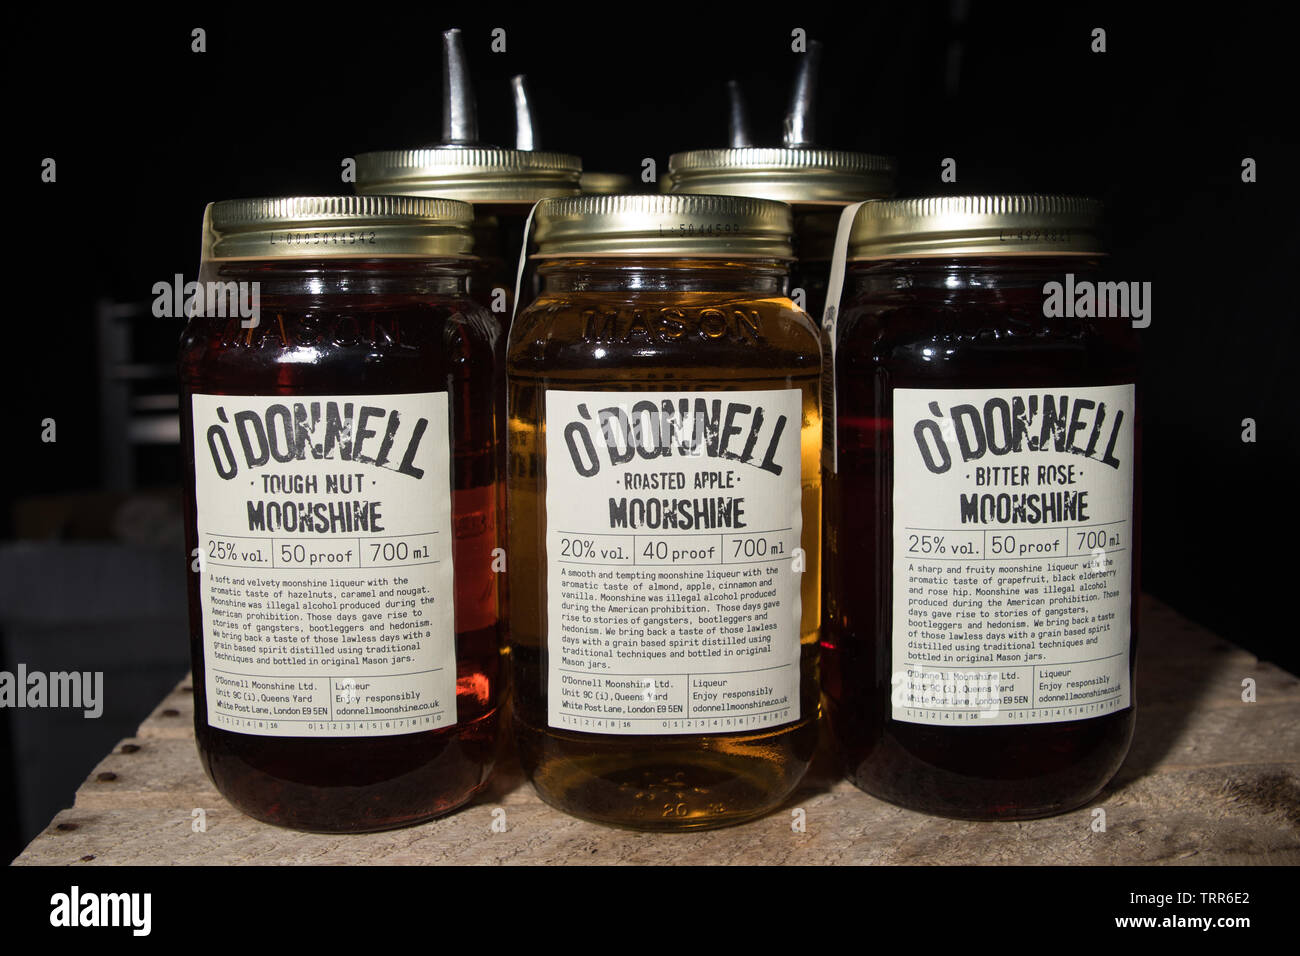 O'Donnell Moonshine - Stock Image